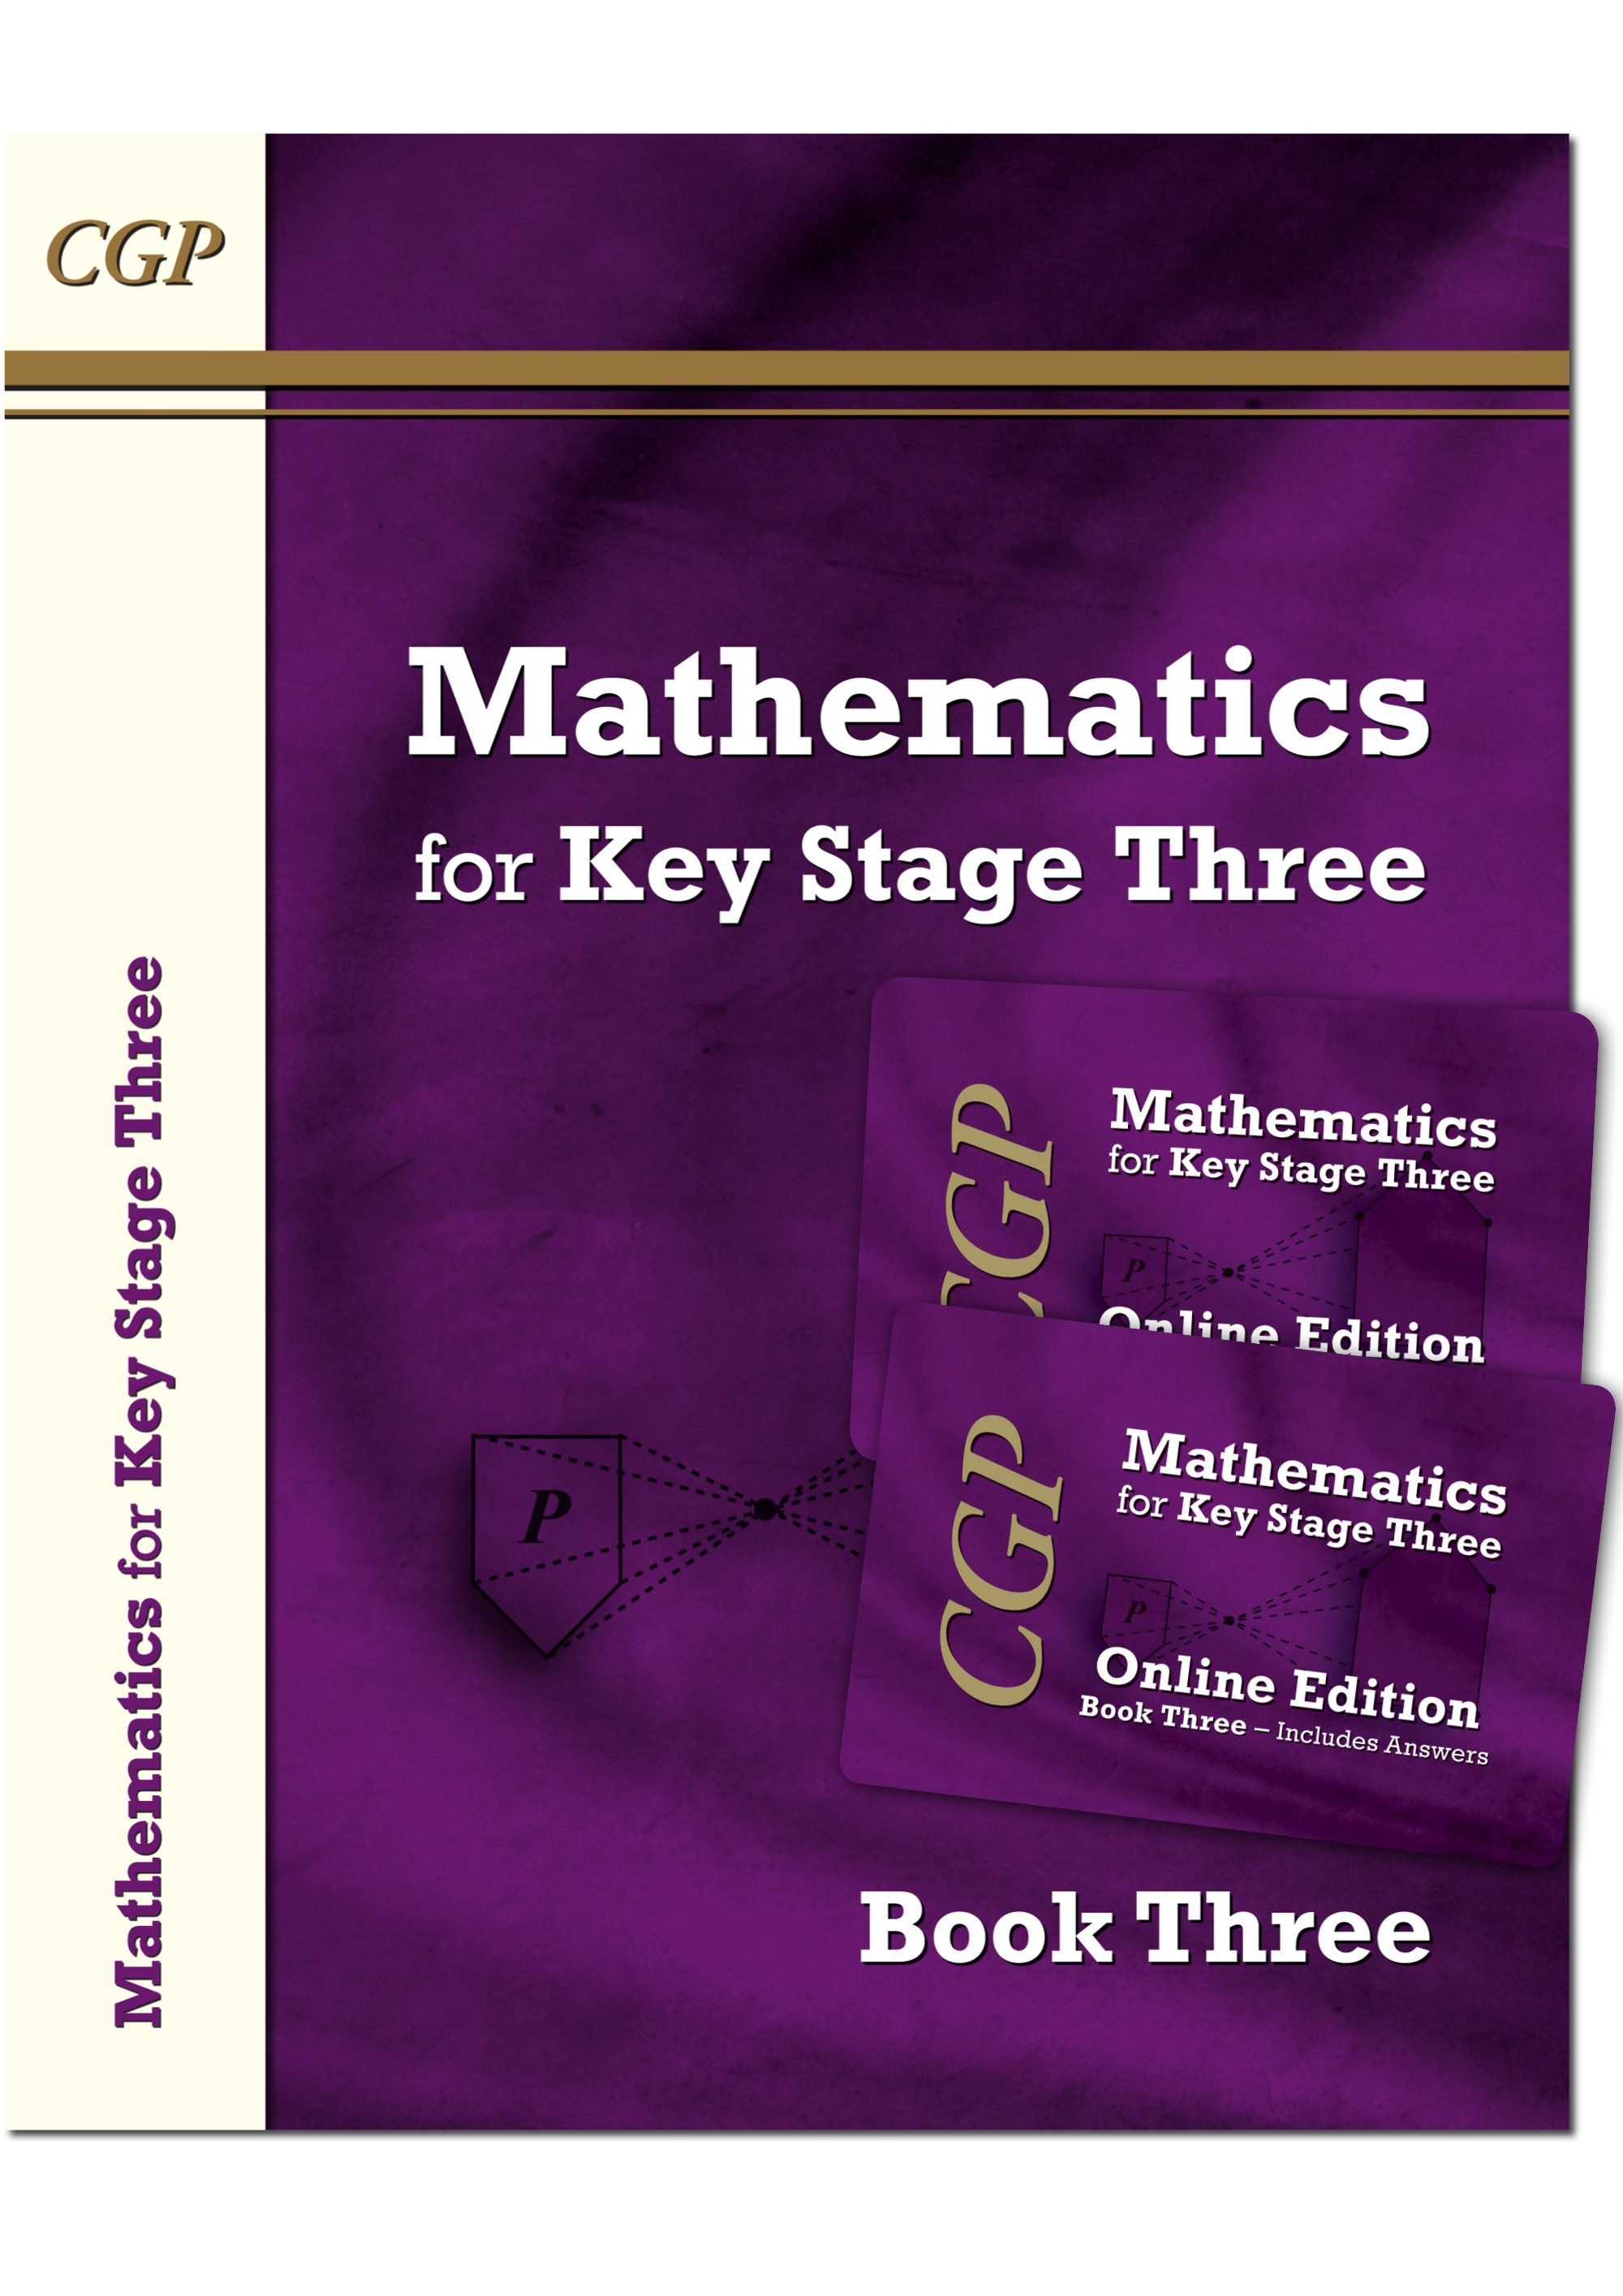 M3NB31 - KS3 Maths Textbook 3 plus two Online Editions (with answers)